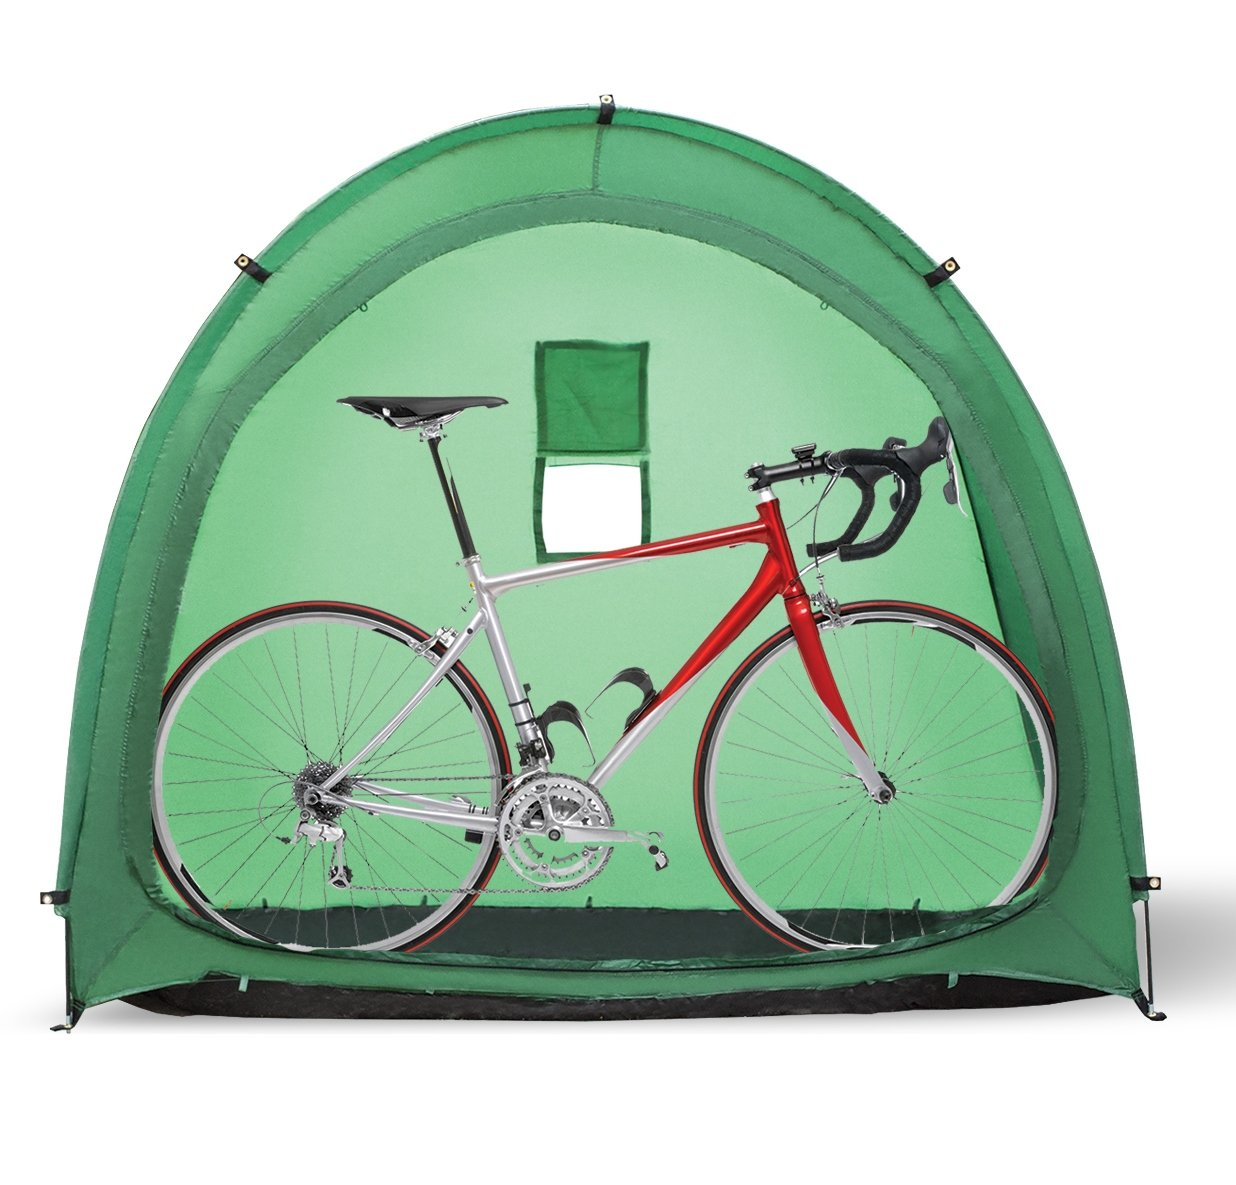 Bike Tent Outdoor Portable Garage Shed Bicycle Storage Space Saver Garden Tools Storage and Pool Storage (Green) (Green)